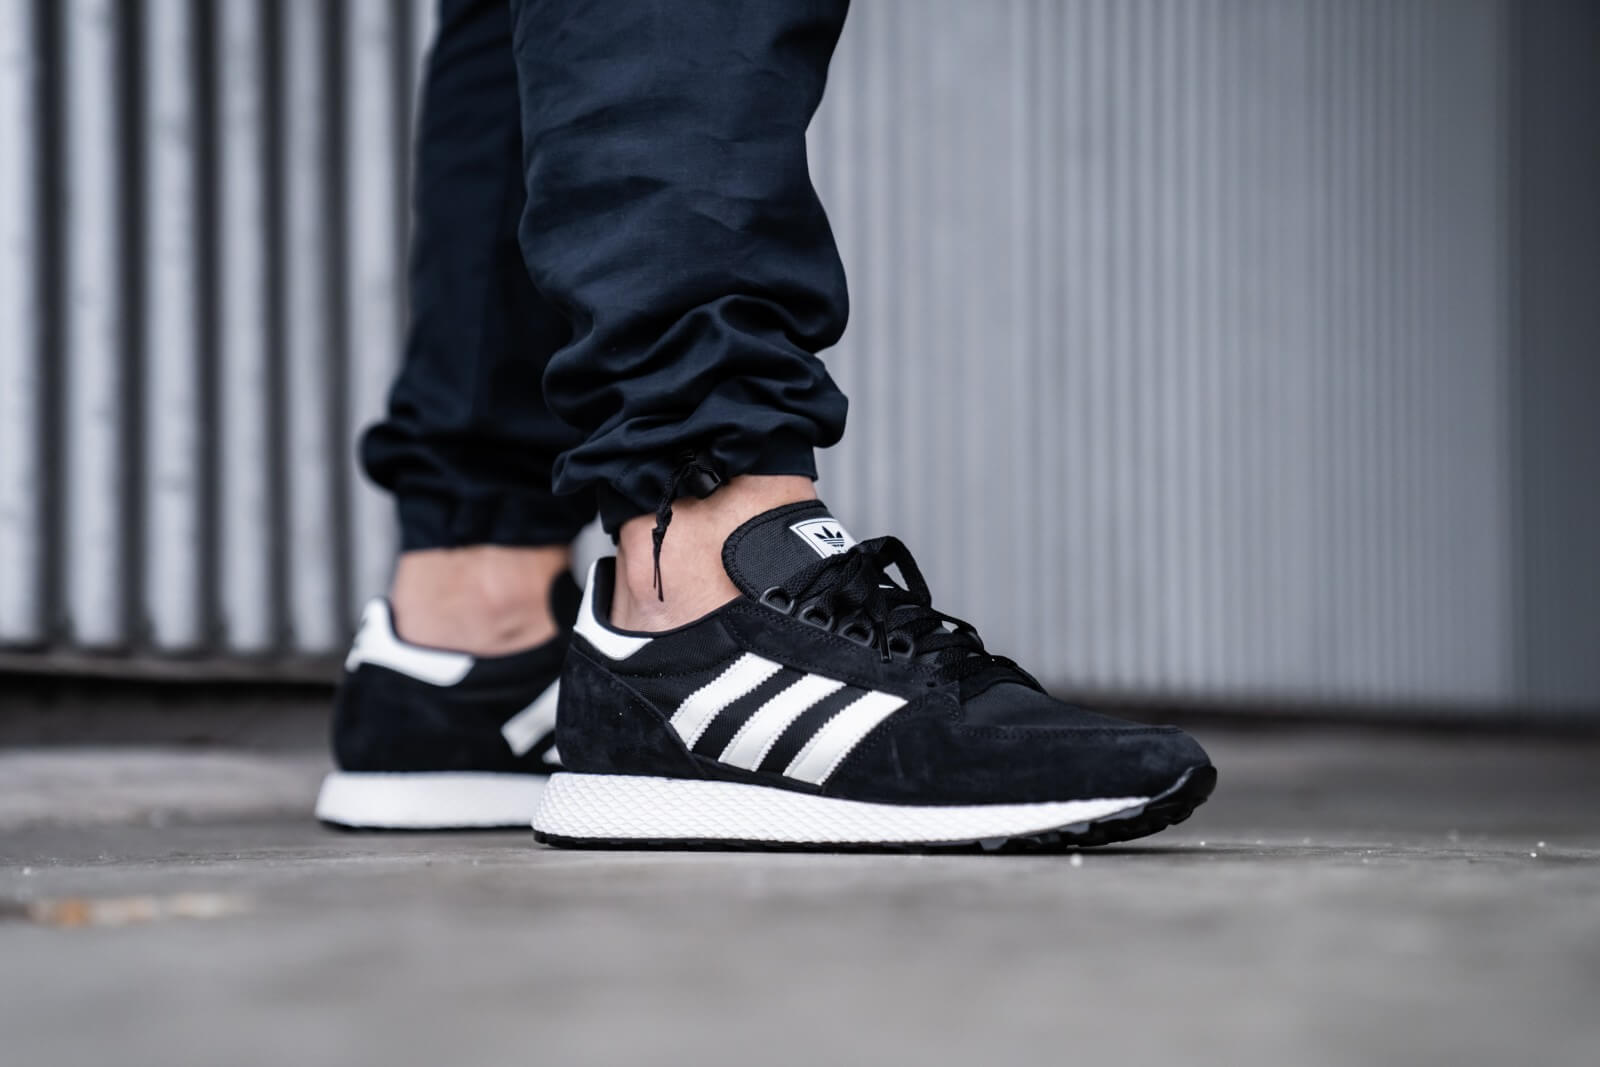 Adidas Forest Grove Core Black/Cloud White - EE5834